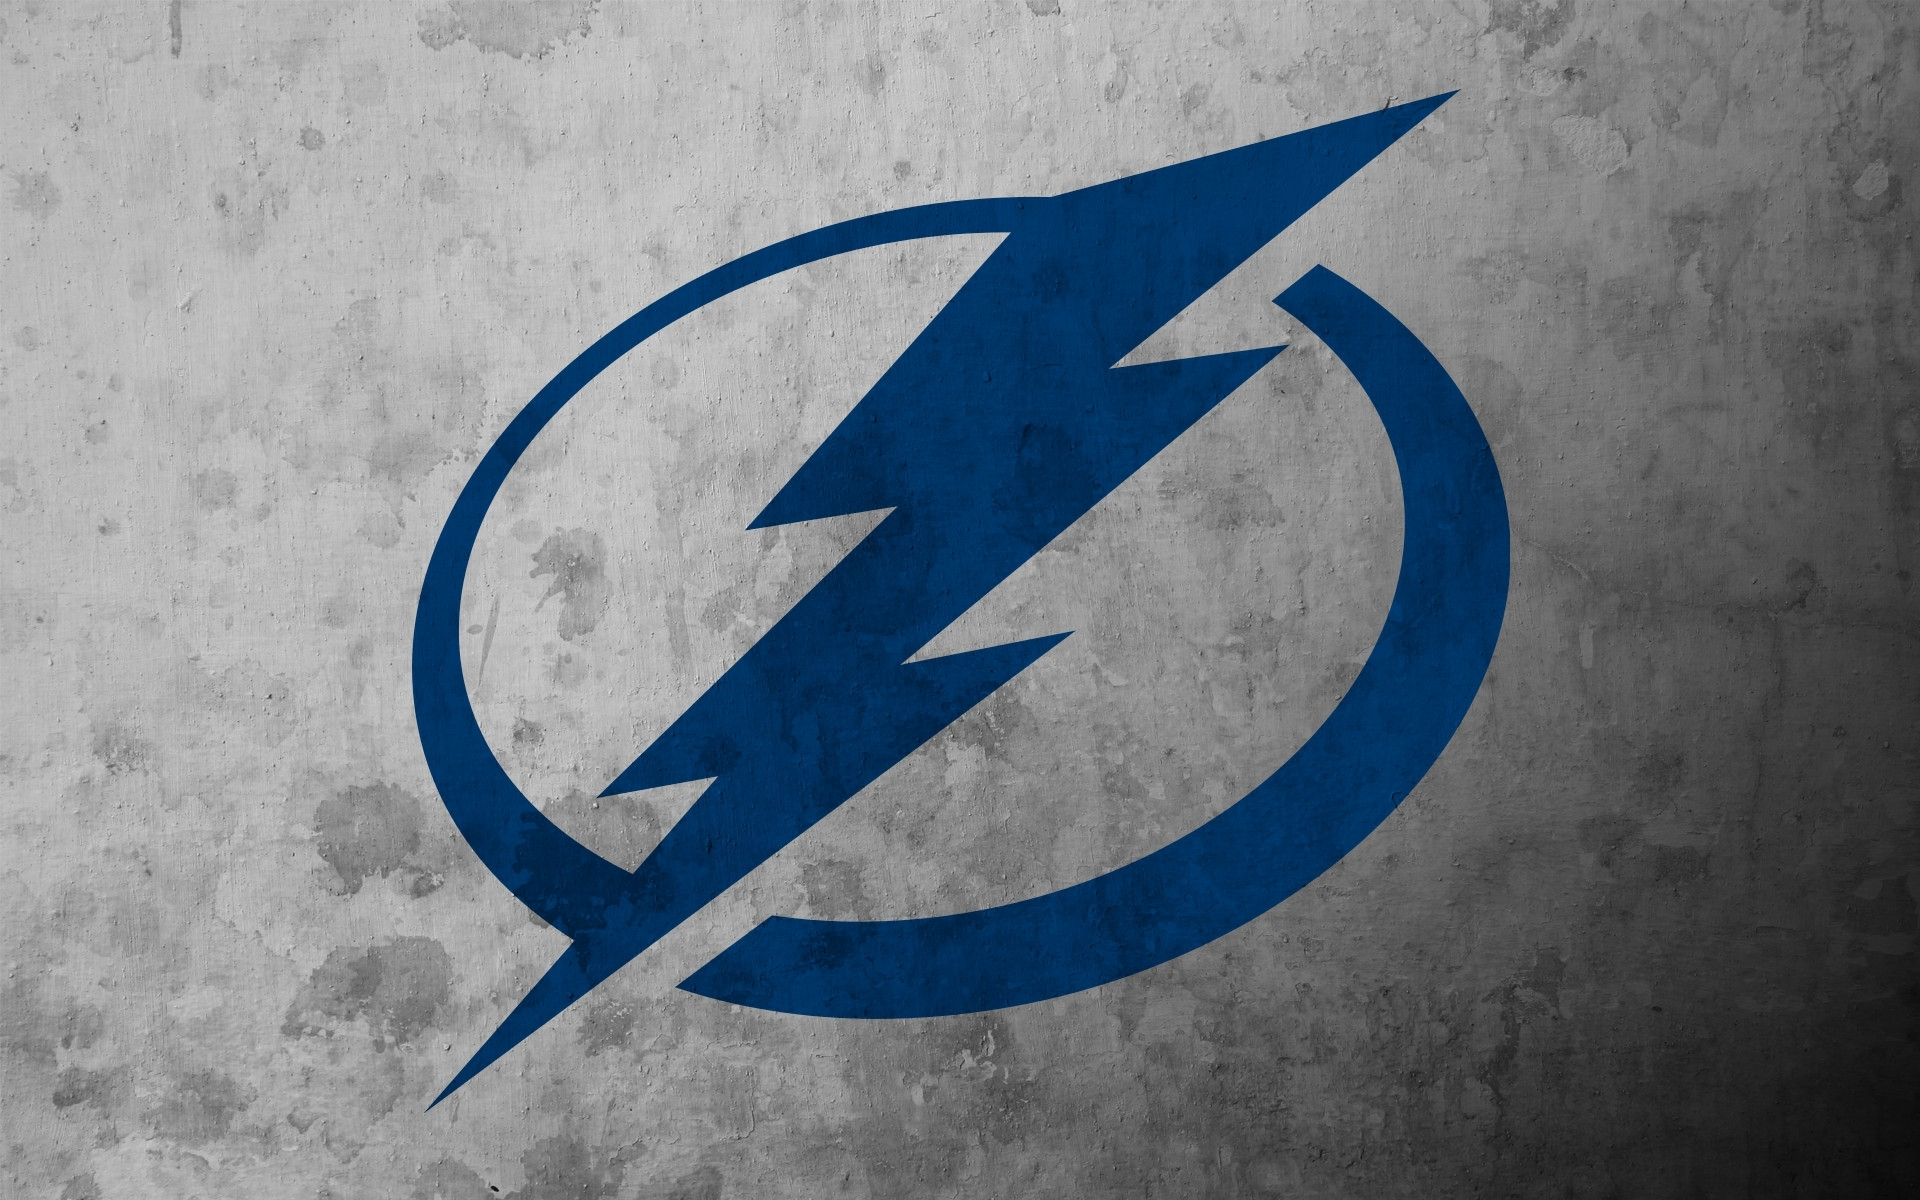 tampa bay lightning wallpaper (65+ images)